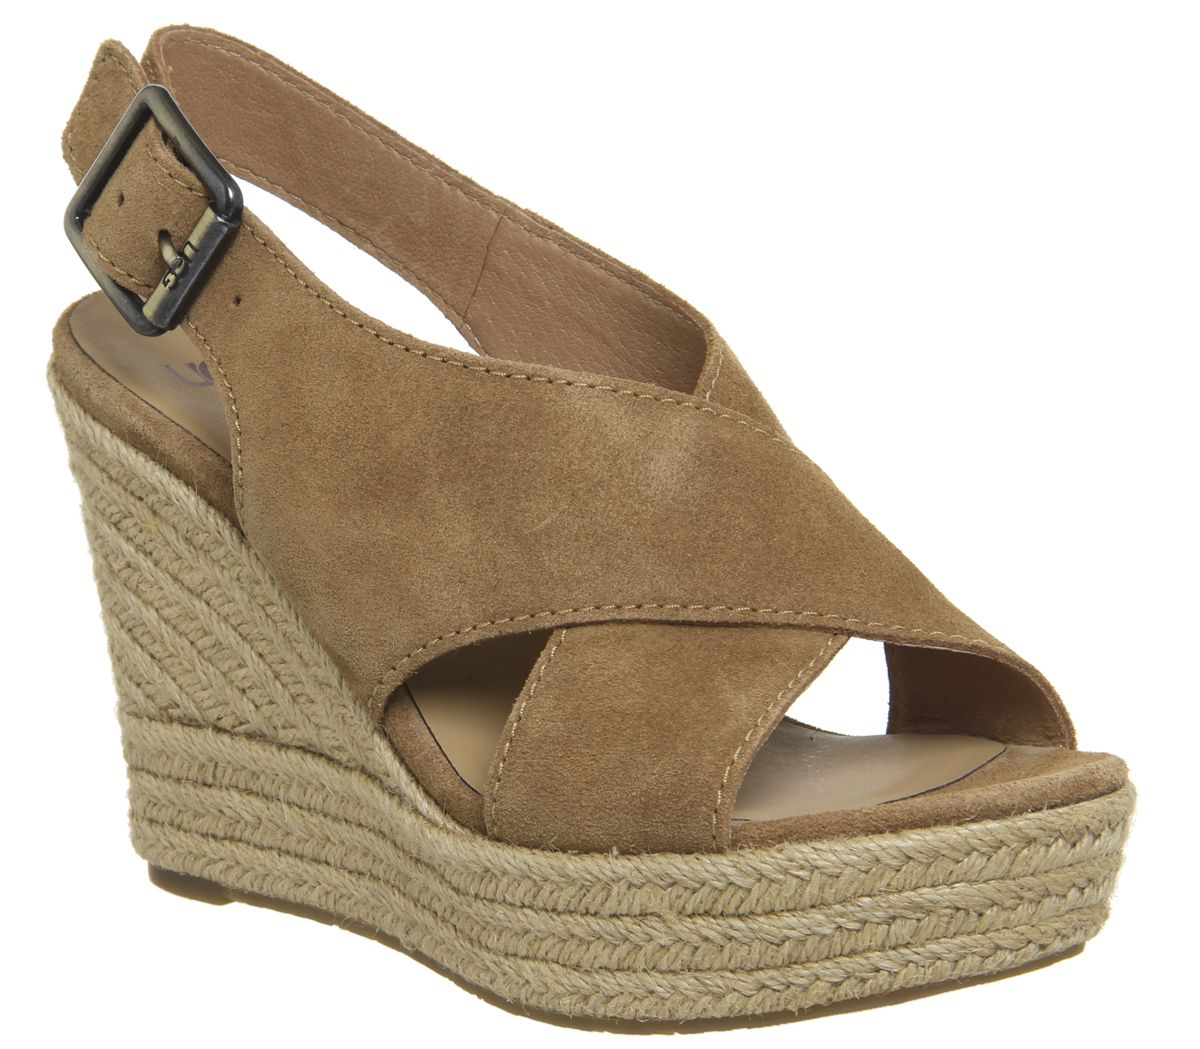 4355dd9183 UGG Harlow Wedges Chestnut - Wedges